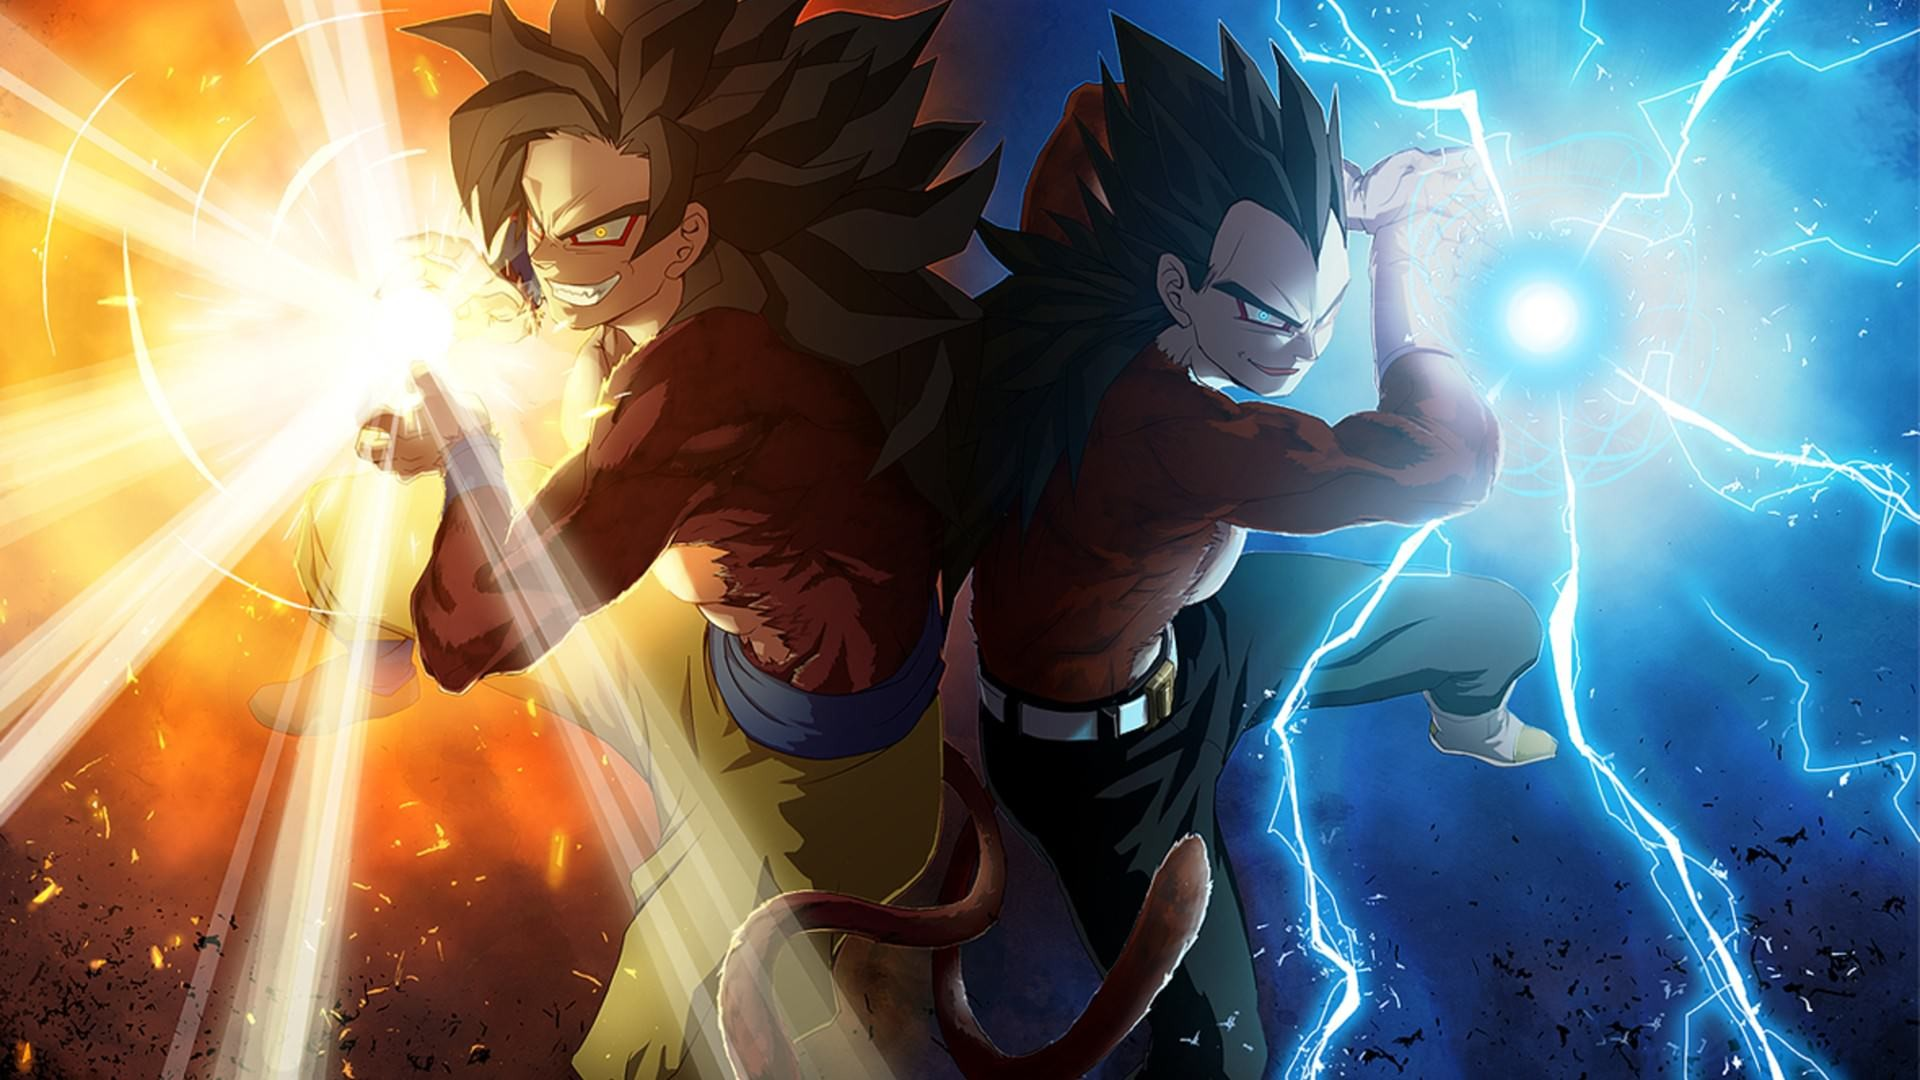 Epic Anime Fighting Wallpapers Hd